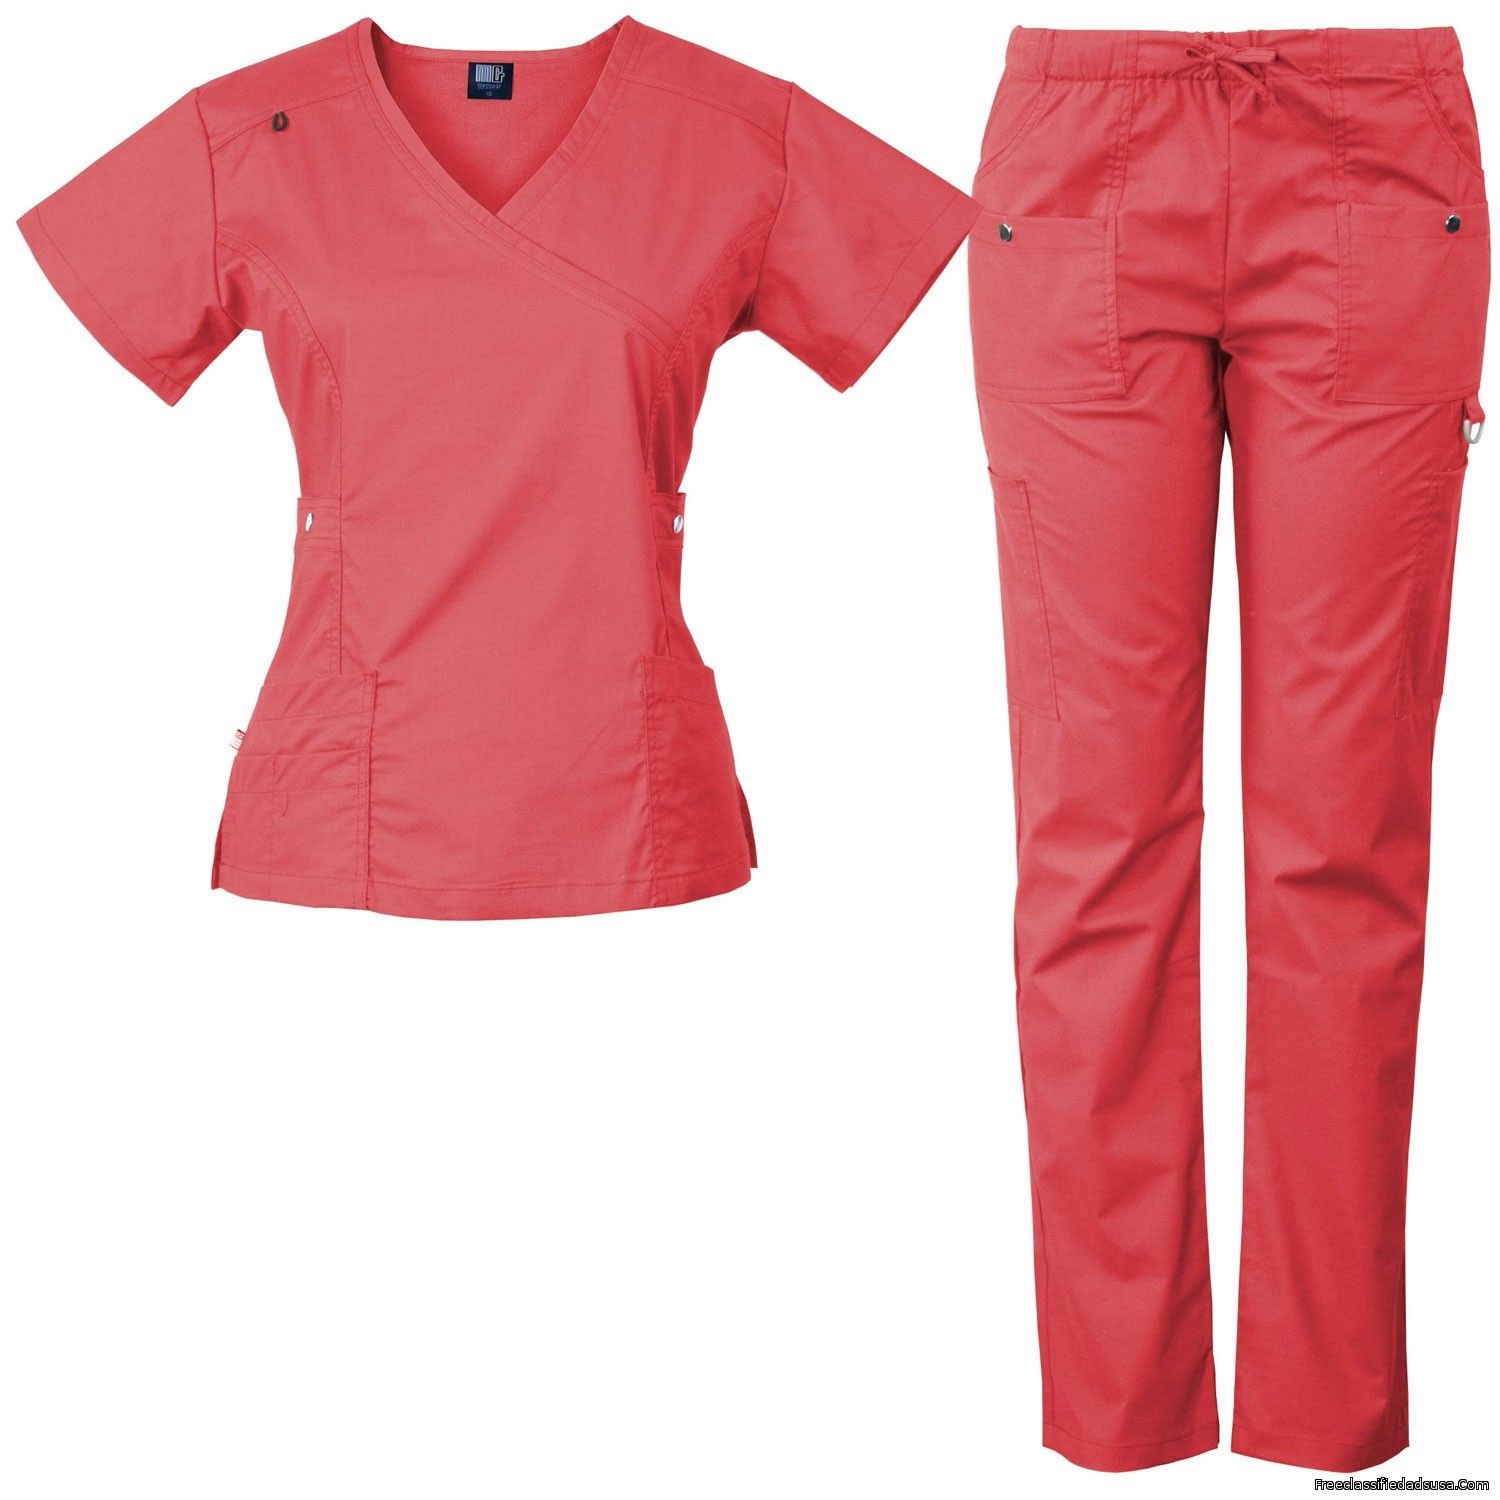 Male and Female Nurse Scrubs for Sale